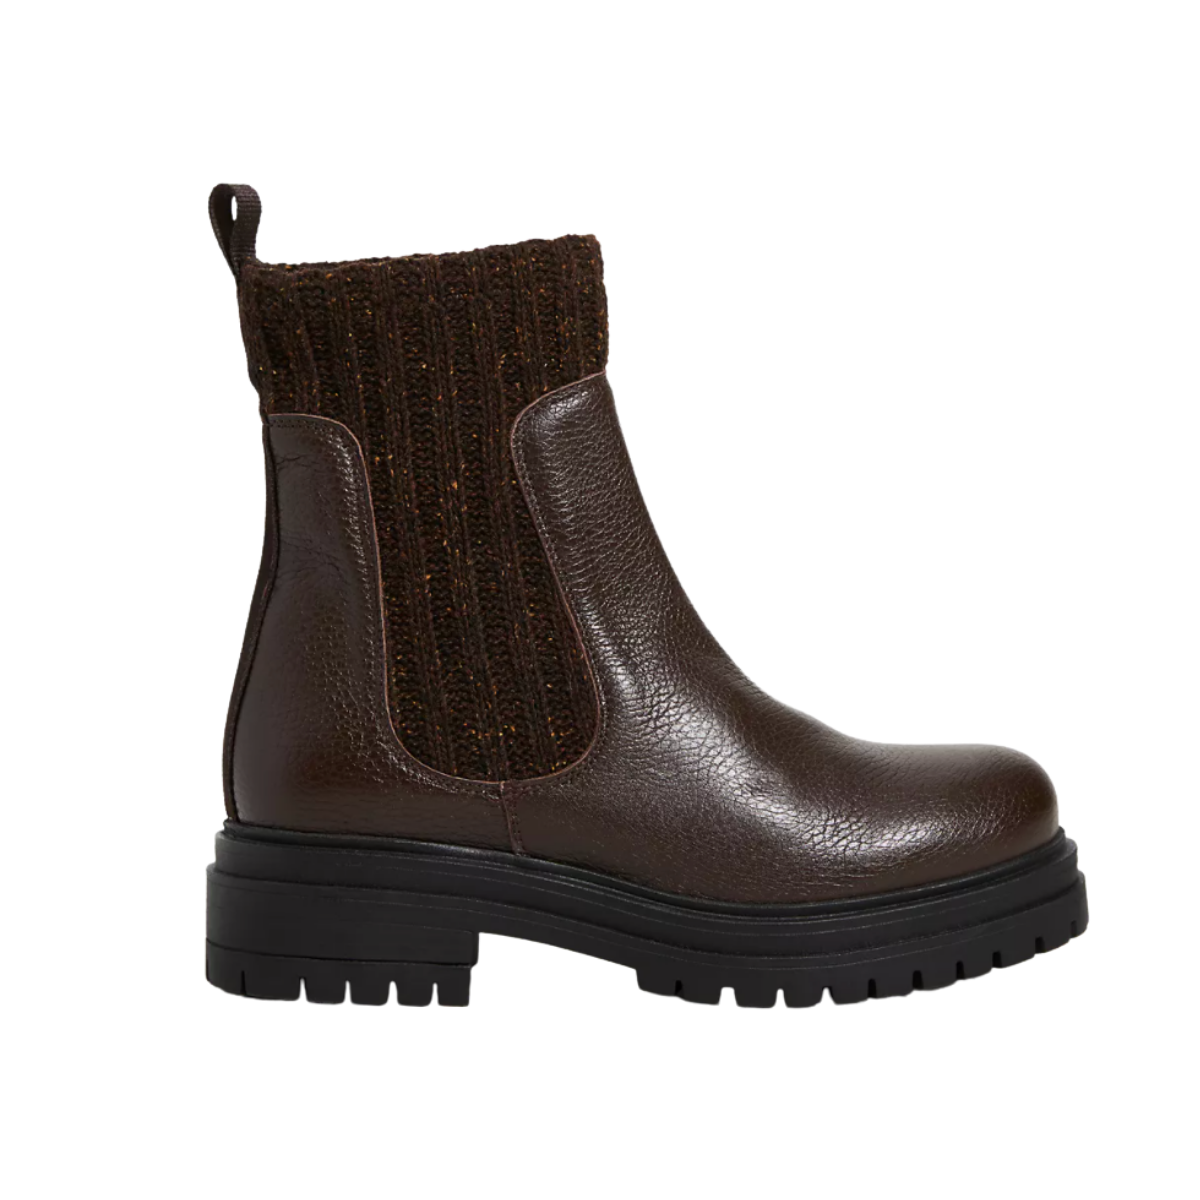 Anthropology Knit Chelsea Boots